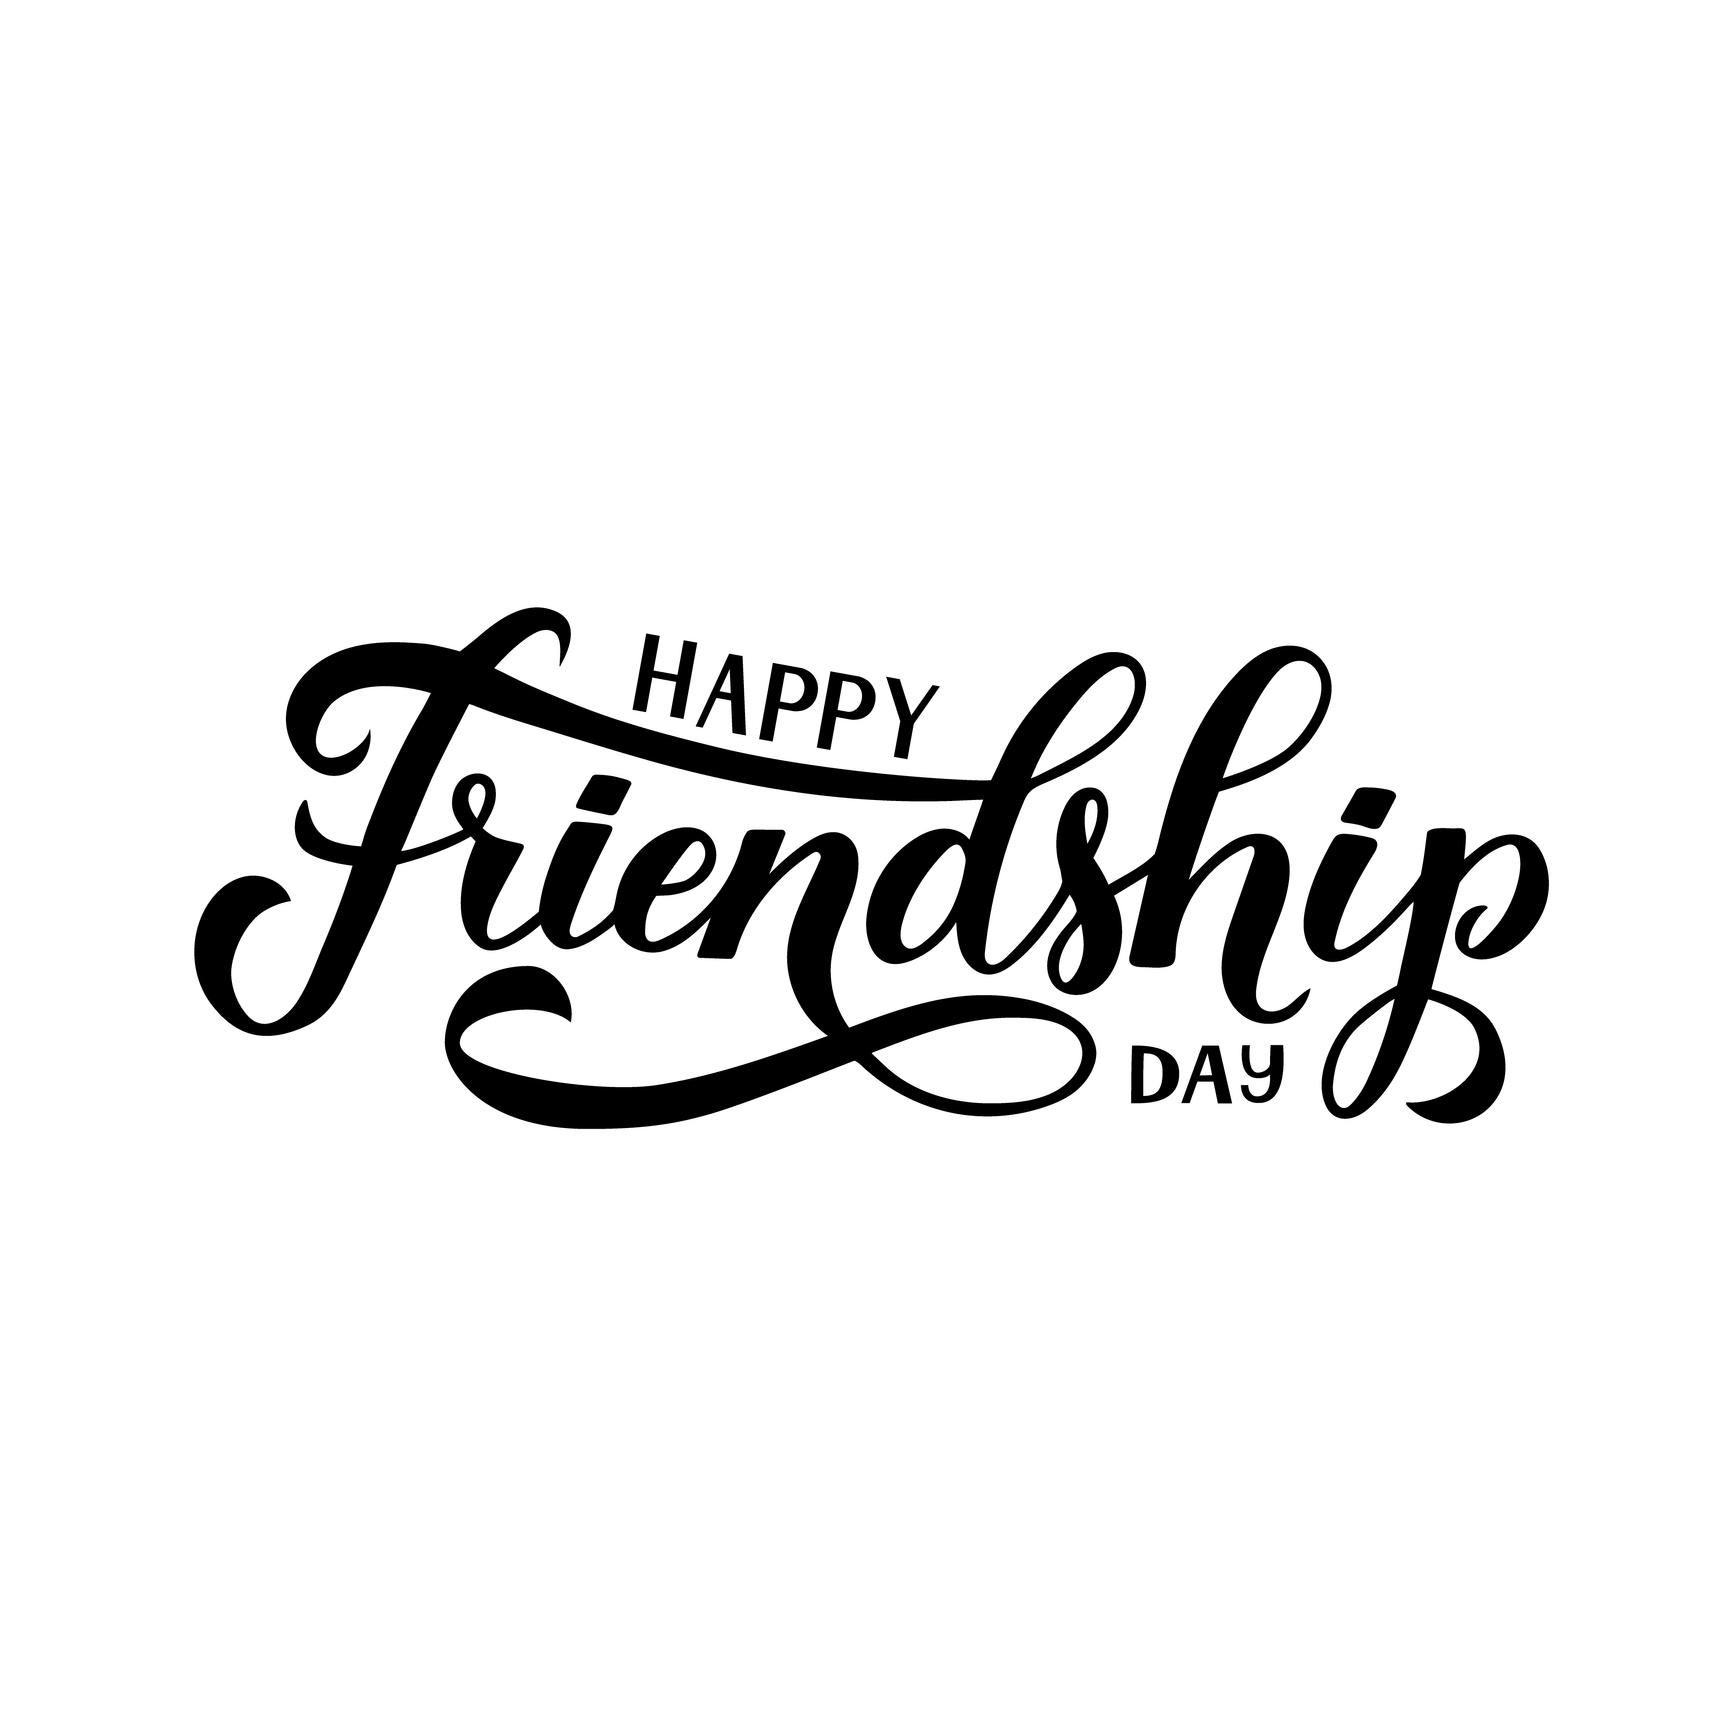 Happy Friendship Day 2020: wishes, quotes